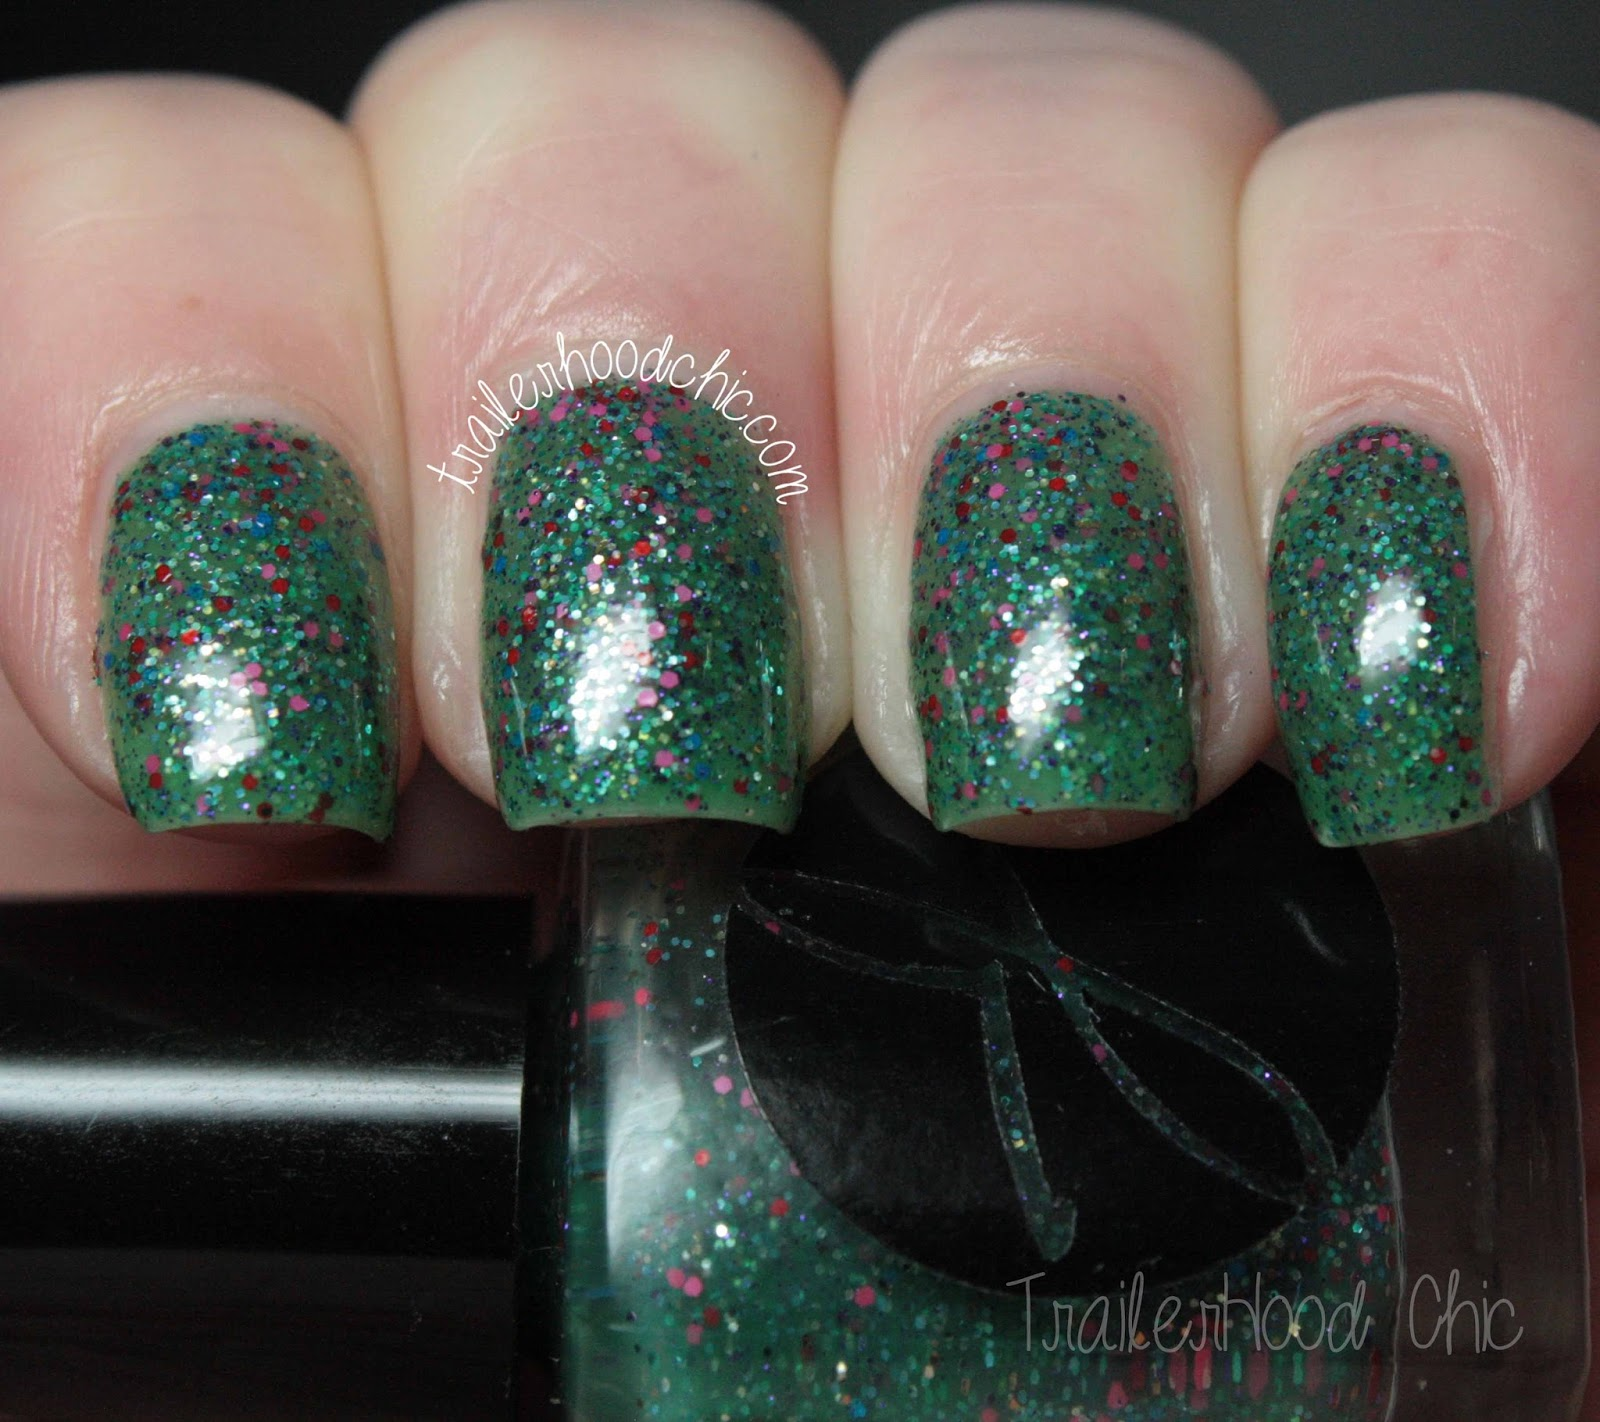 jior couture merry movie collection swatches meant a little bit more